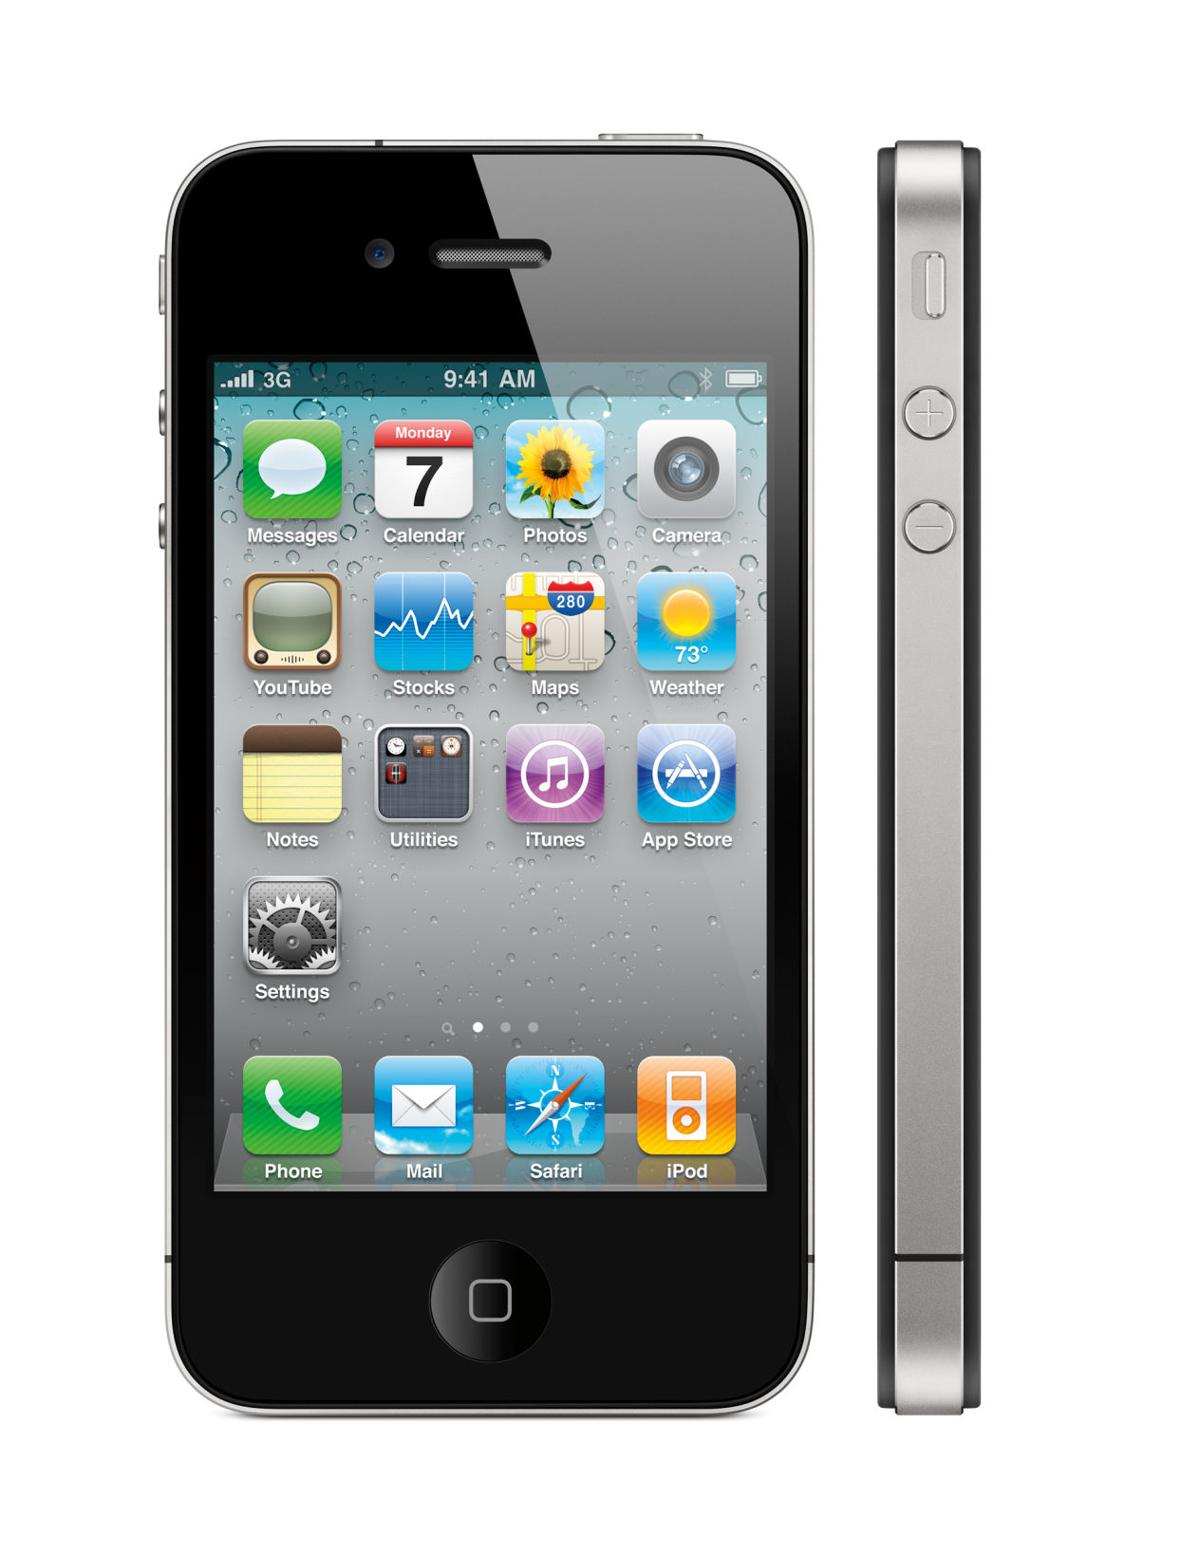 IPhone to get larger screen, news report says